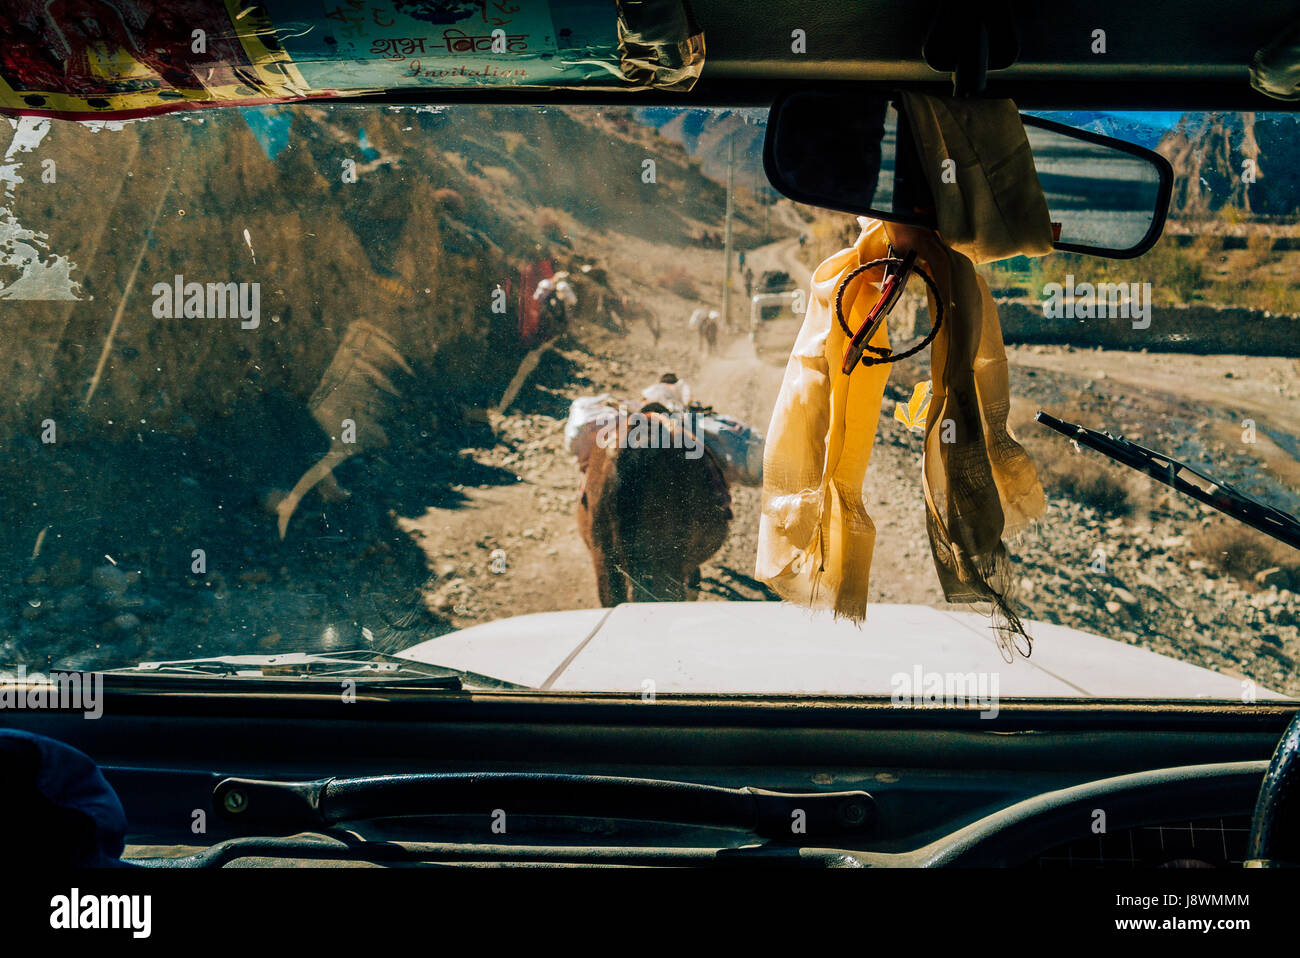 Driving on rugged dusty Himalayan mountain road within the Annapurna circuit in Nepal. - Stock Image